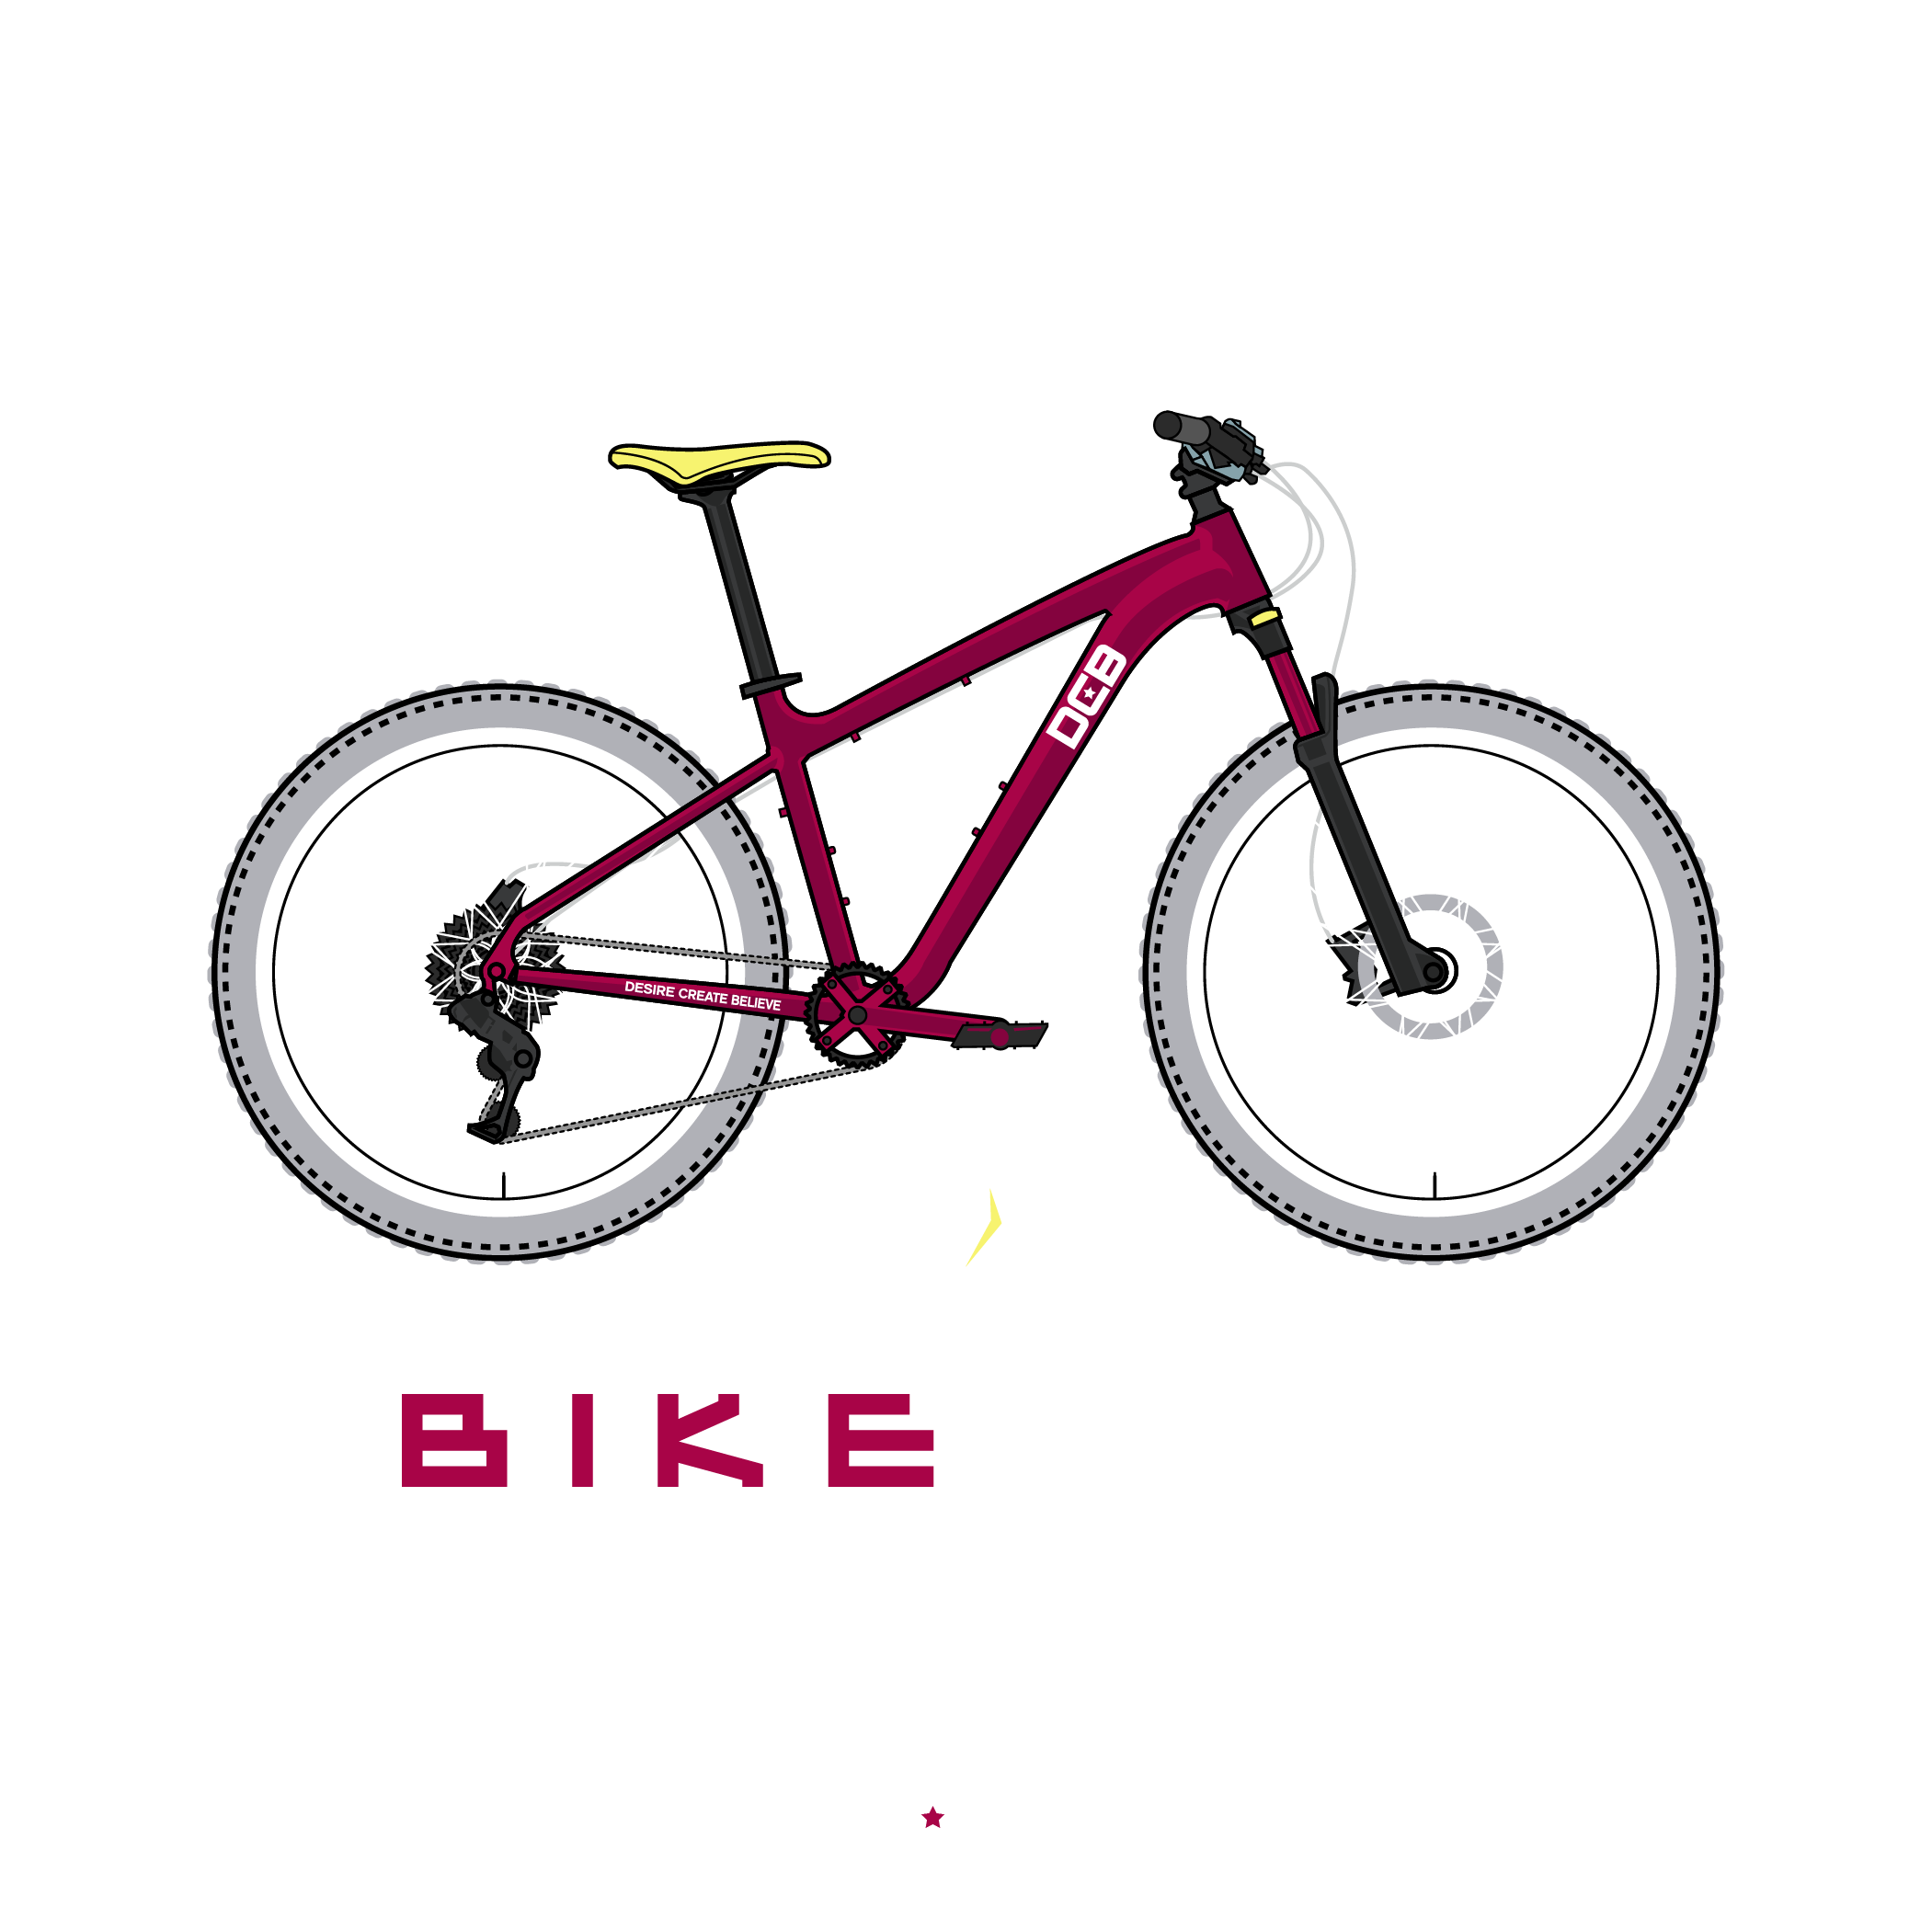 Bike Life Hardtail Outskirts.png